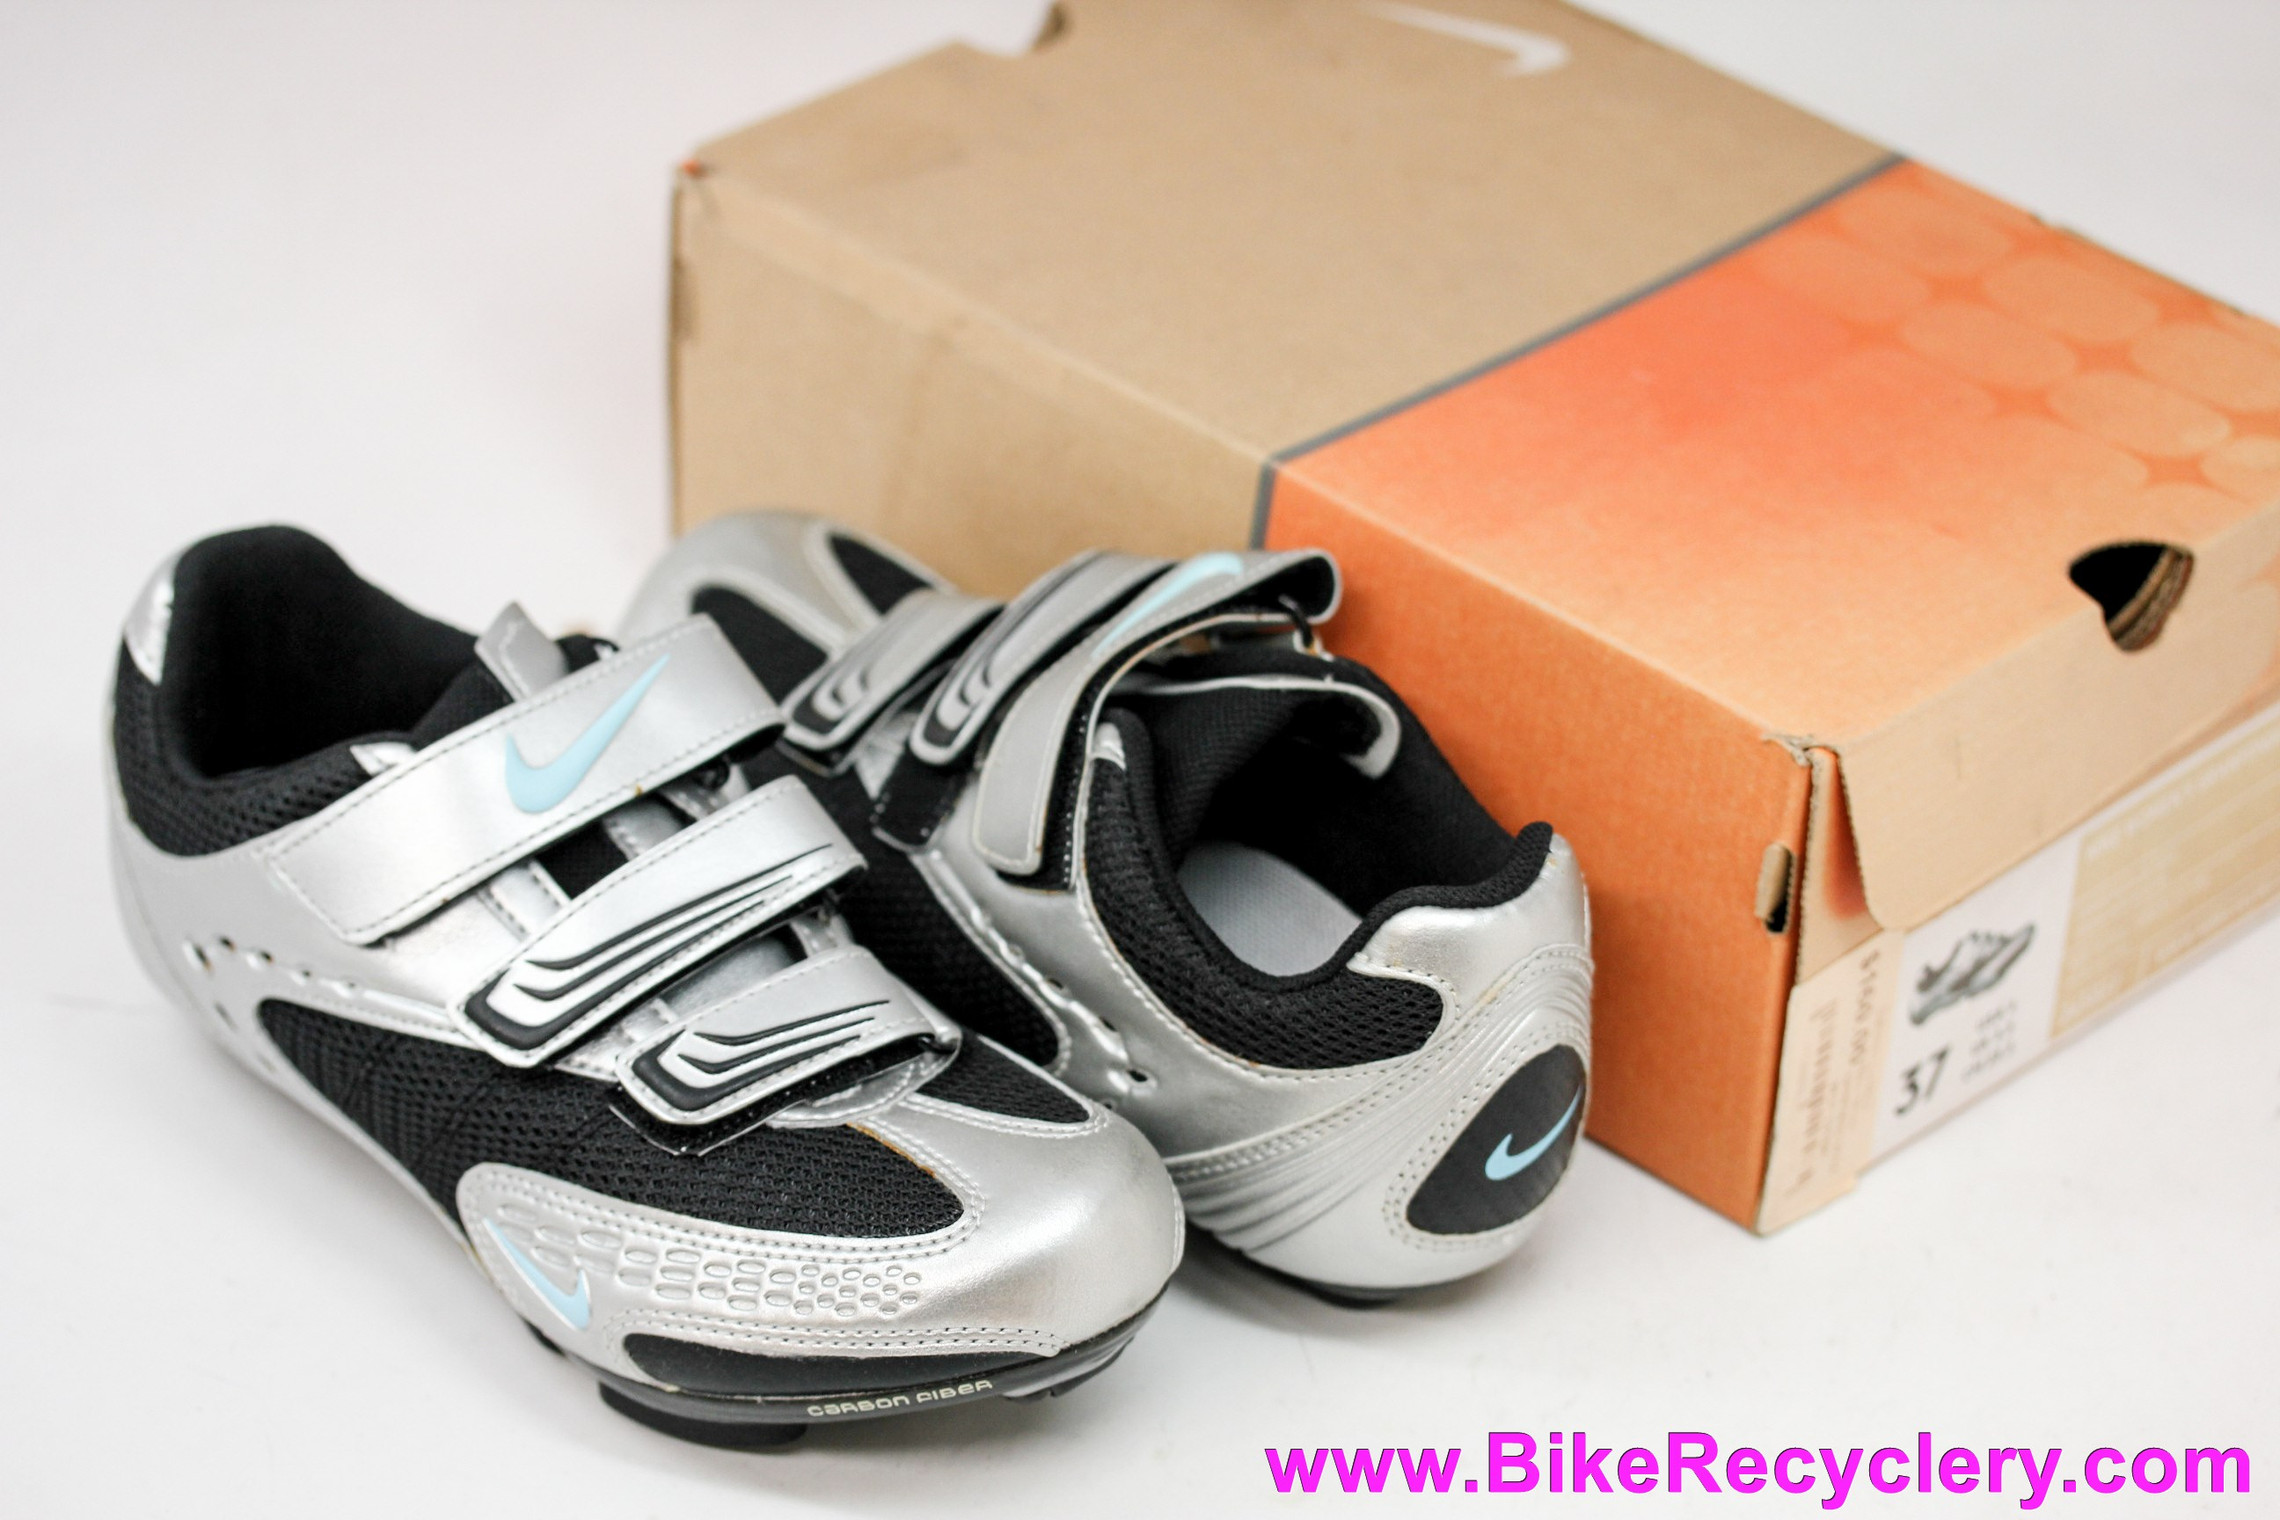 Cleats Cycling Shoes Cleats For Cycling Shoes Vintage NIB NEW in Box